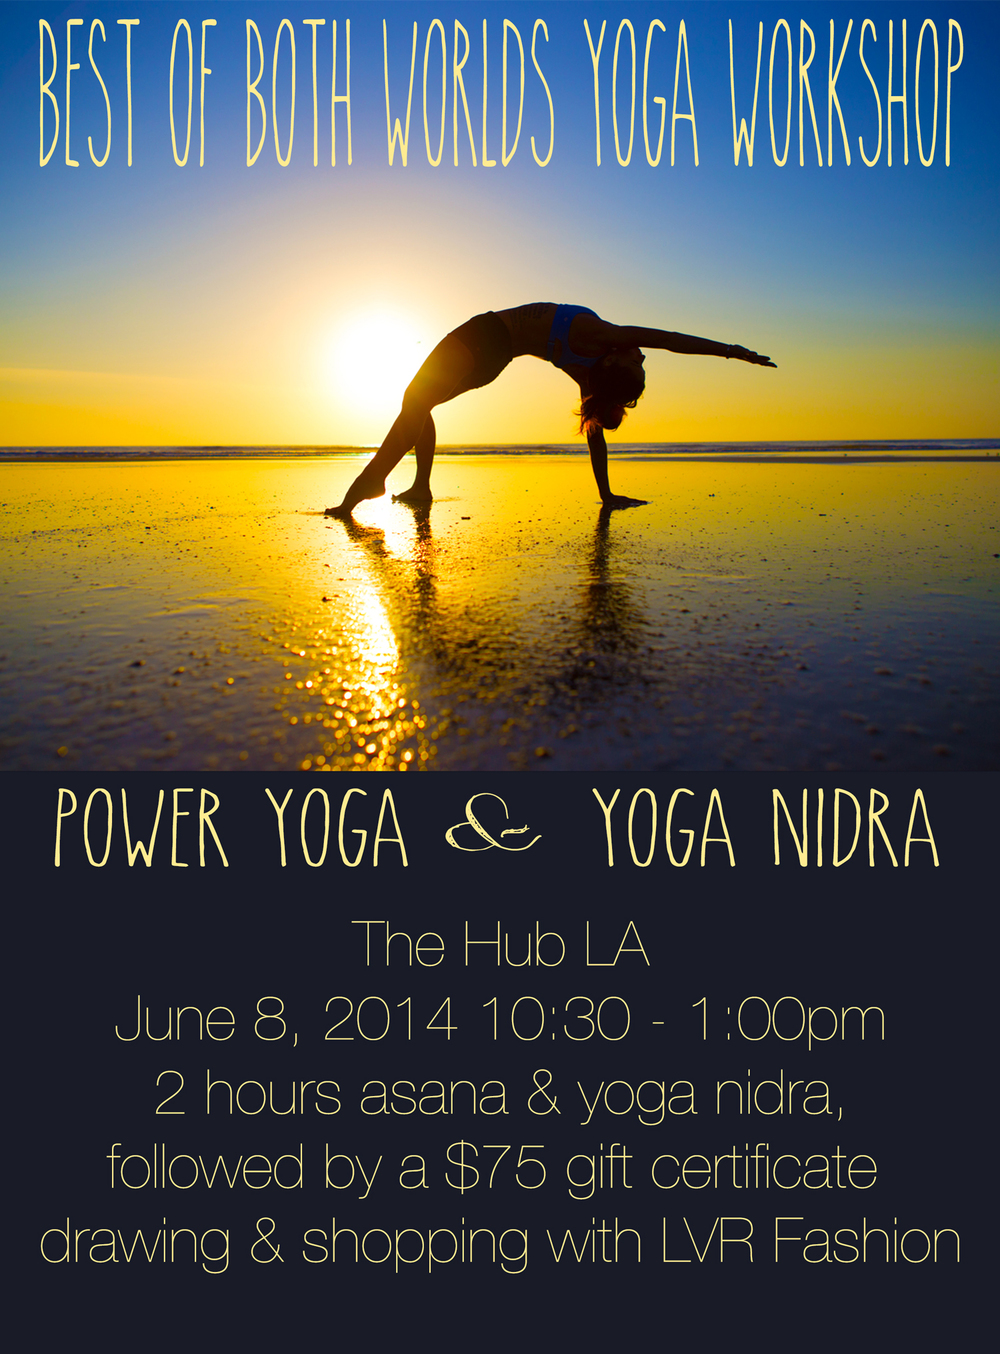 Yoga workshop in Los Angeles